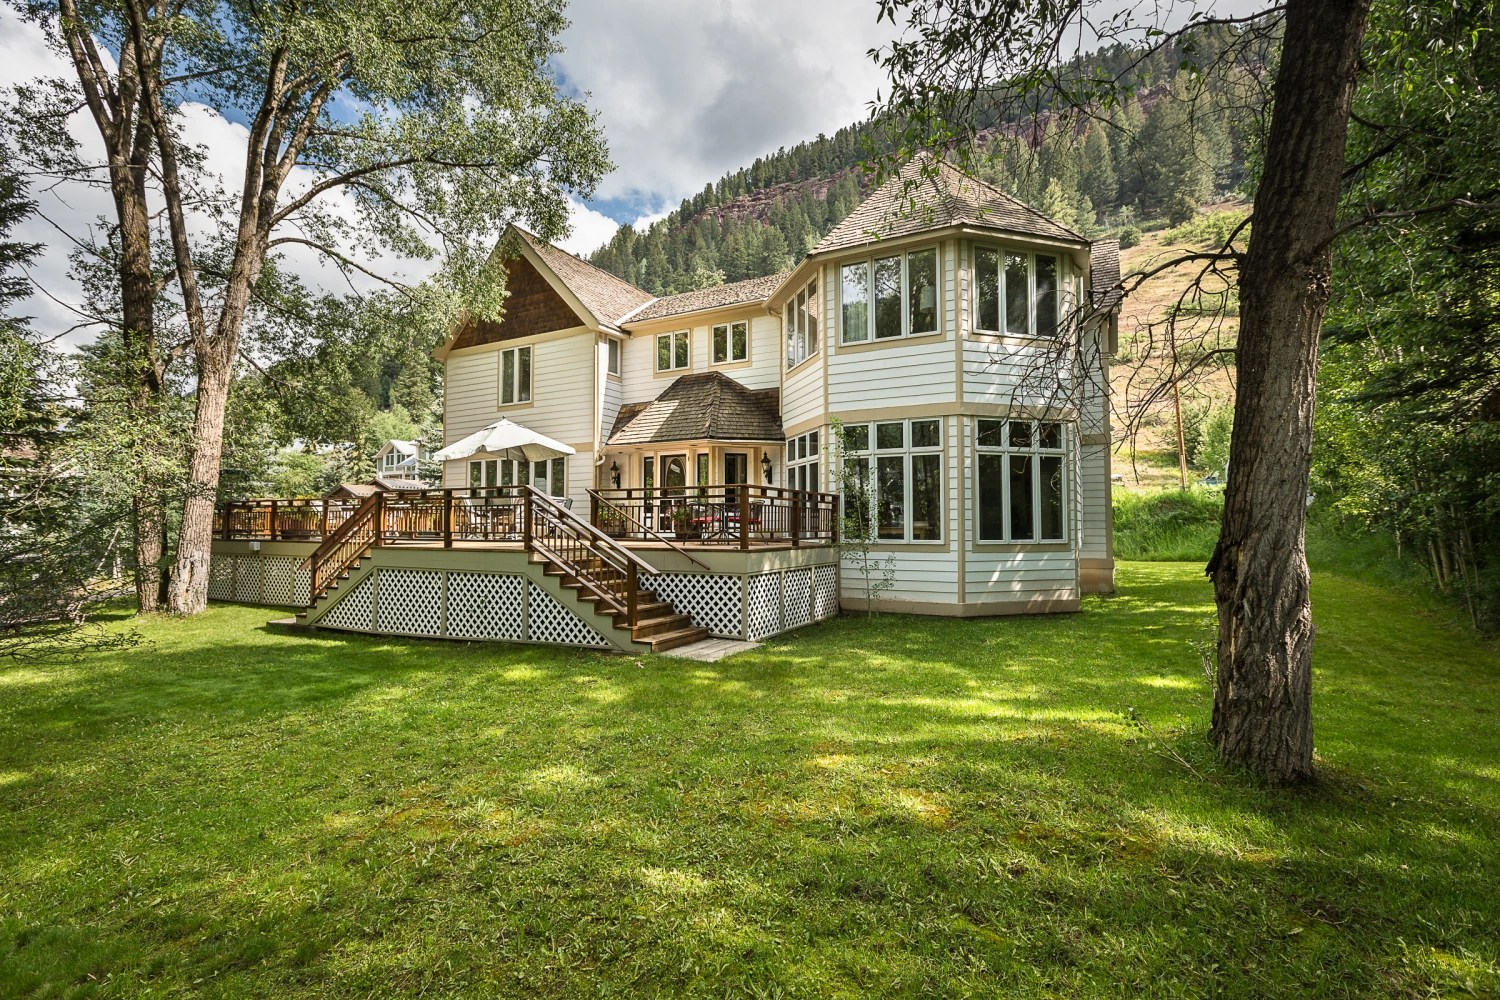 The Former Home Of Concert Promoter Bill Graham Is For Sale In Telluride,  Colo.